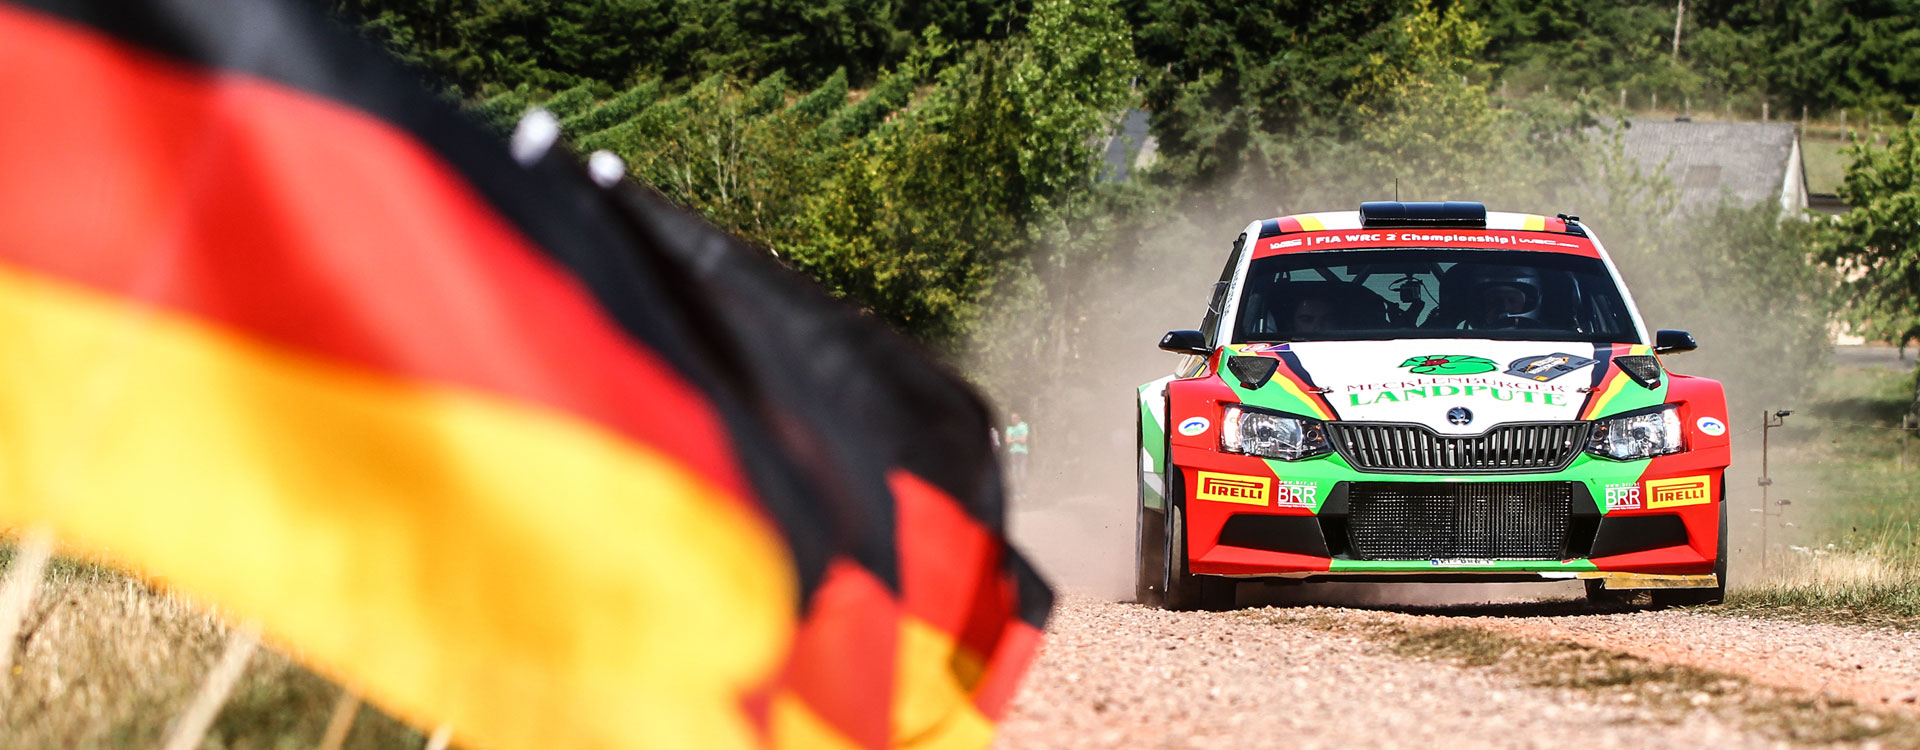 WRC Germany:Strong contingent of ŠKODA FABIA R5 cars entered